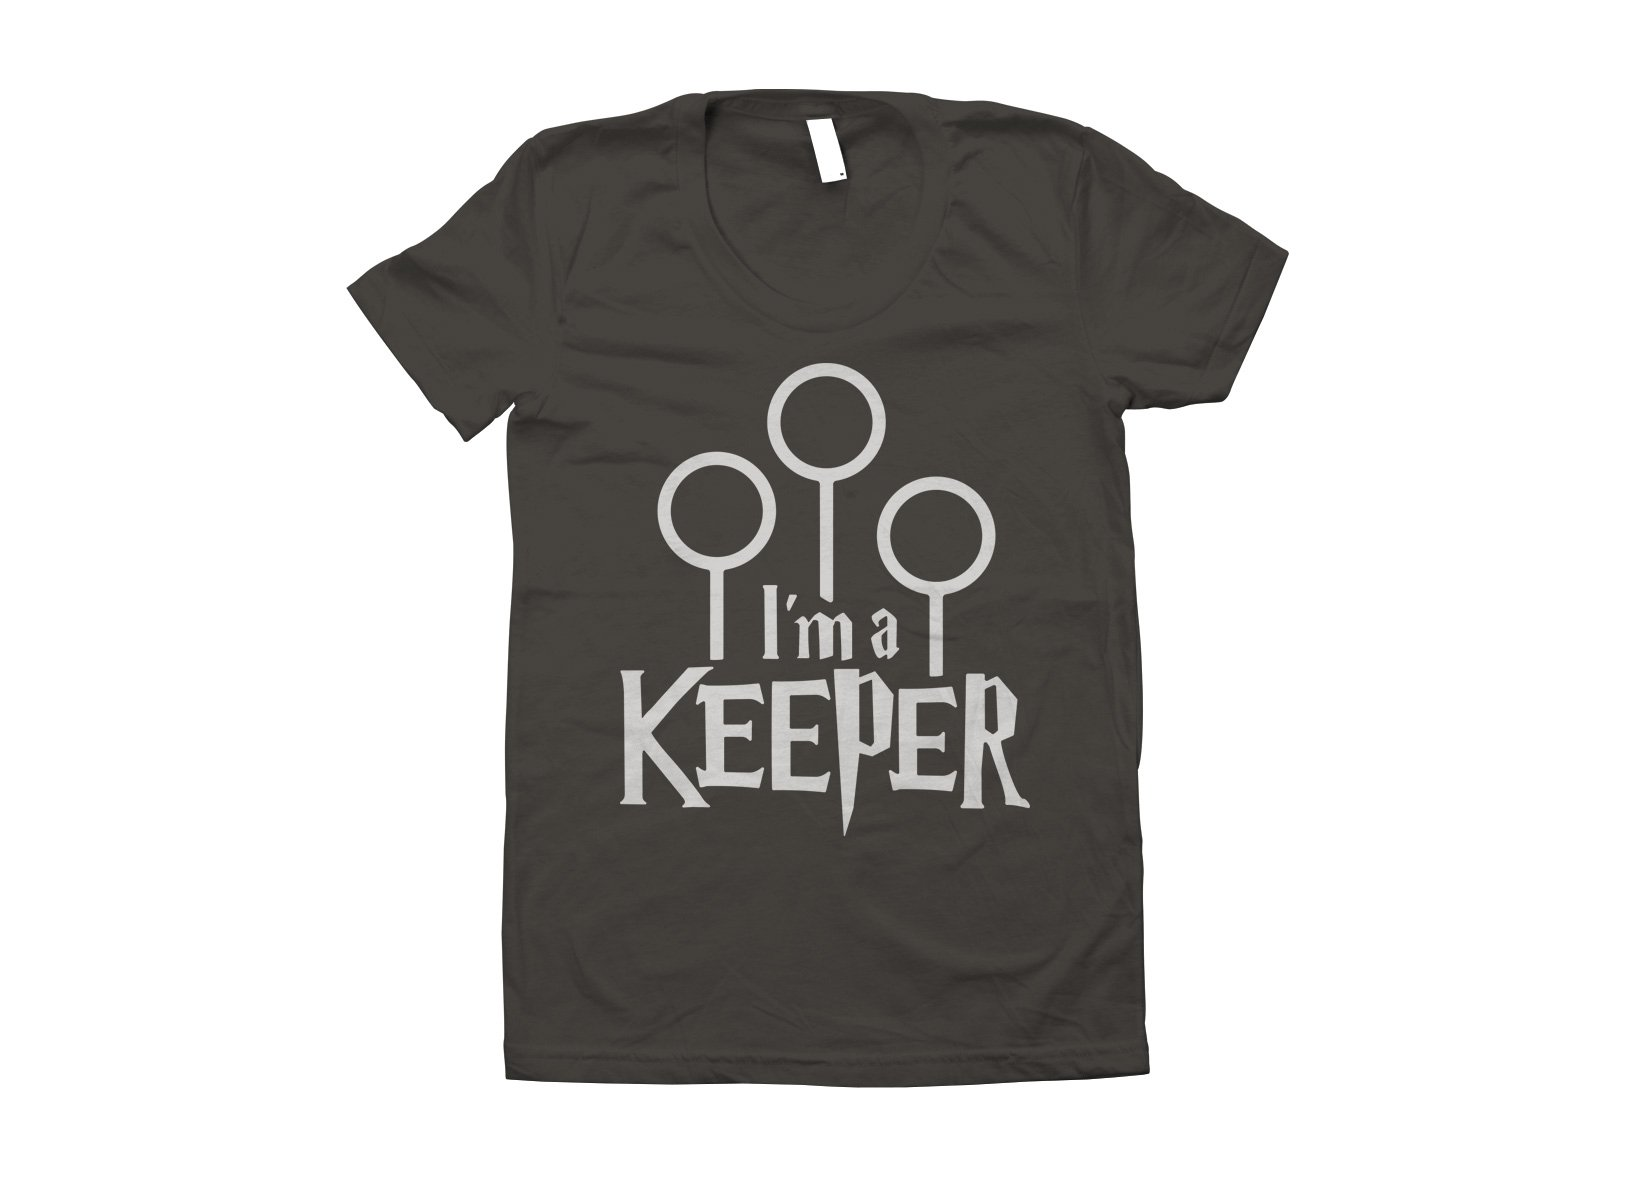 I'm A Keeper on Juniors T-Shirt